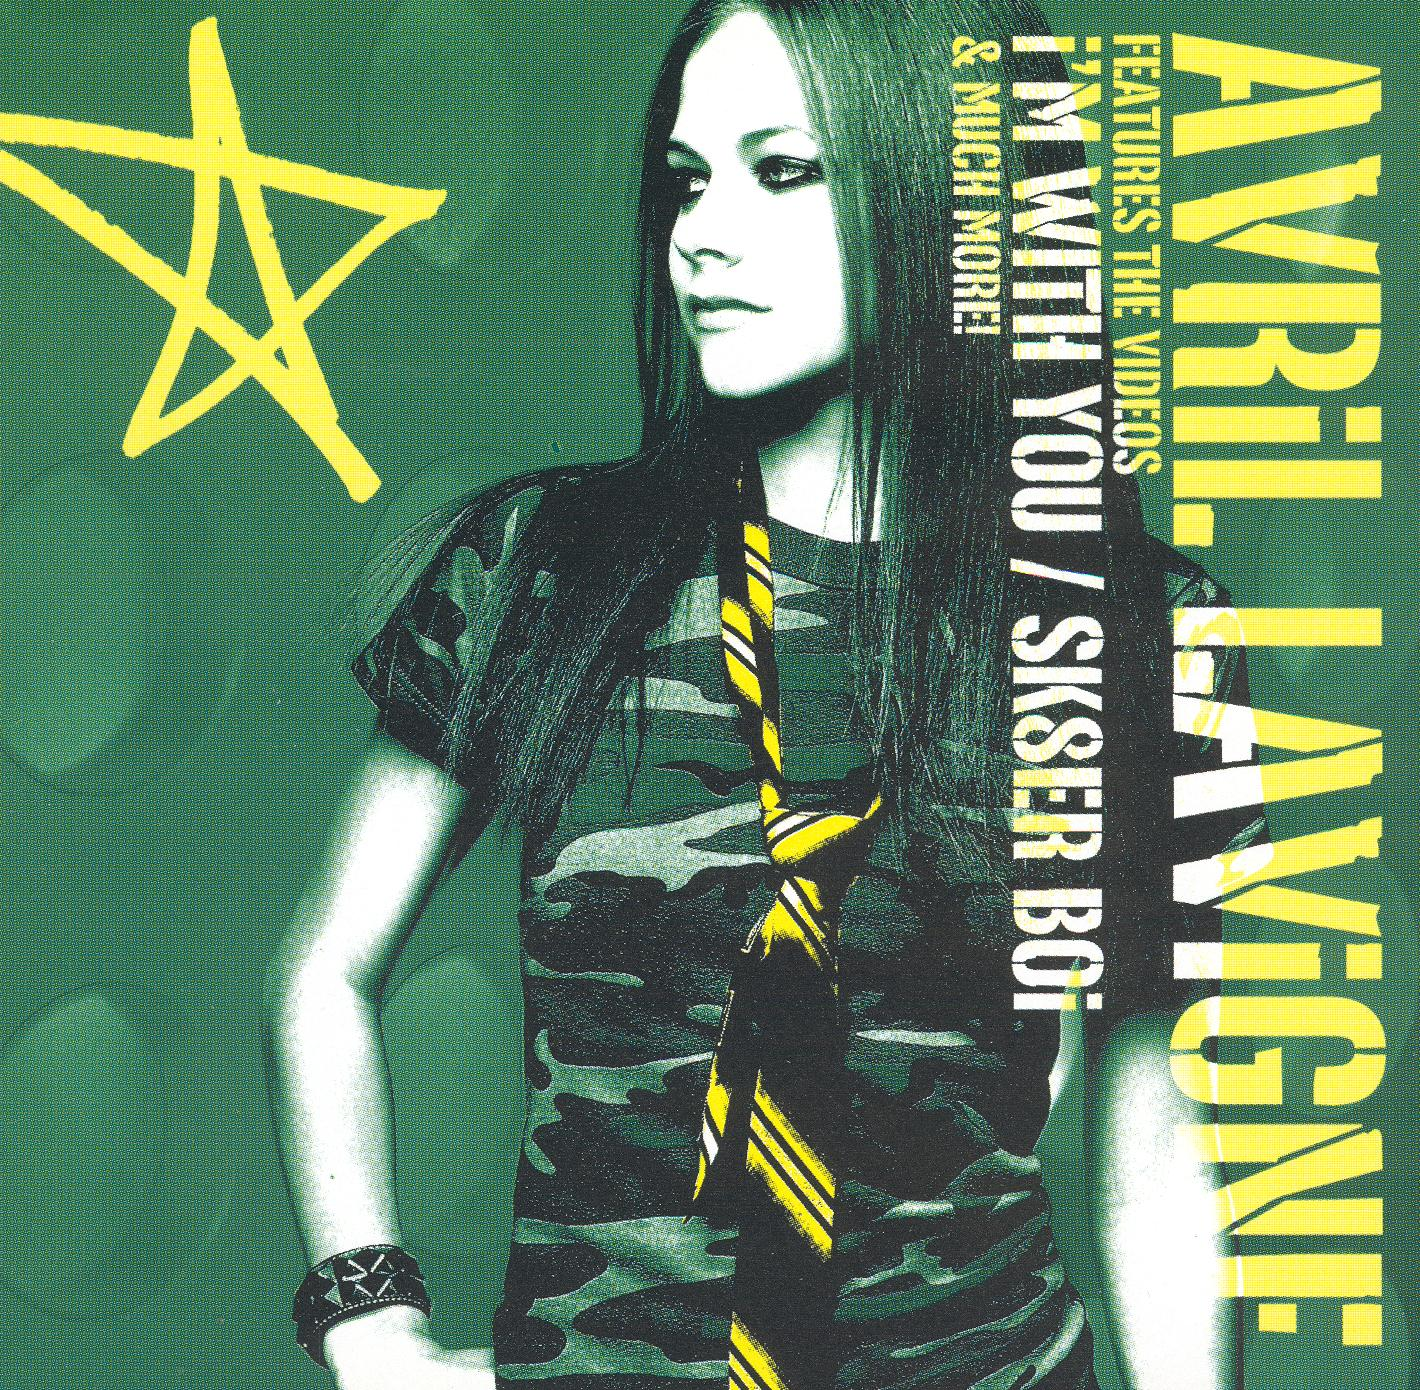 Avril Lavigne: I'm With You/Sk8er Boi [DVD Single]